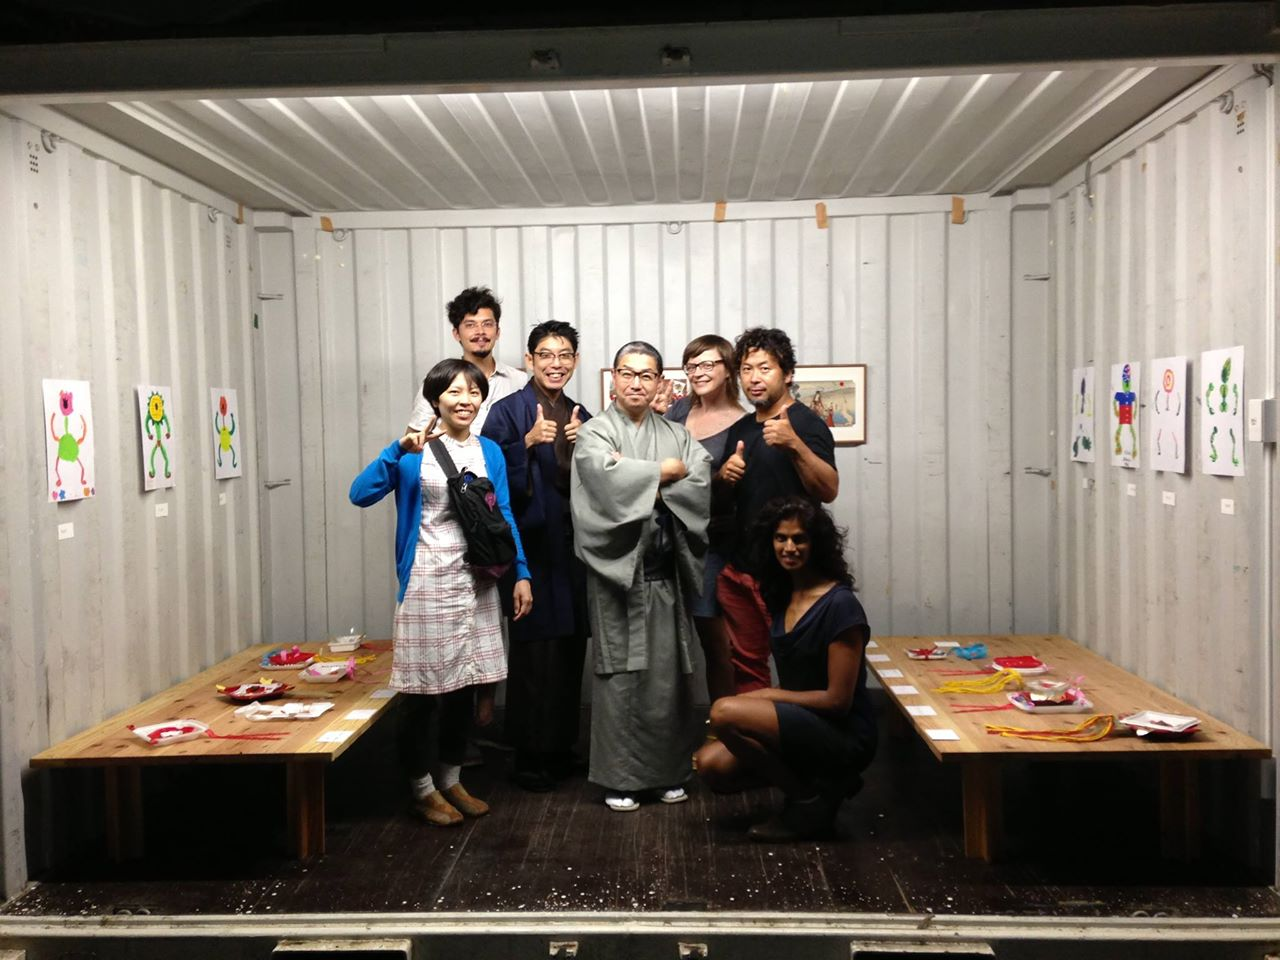 Posing inside art exhibition steel container with organizers and fellow artists